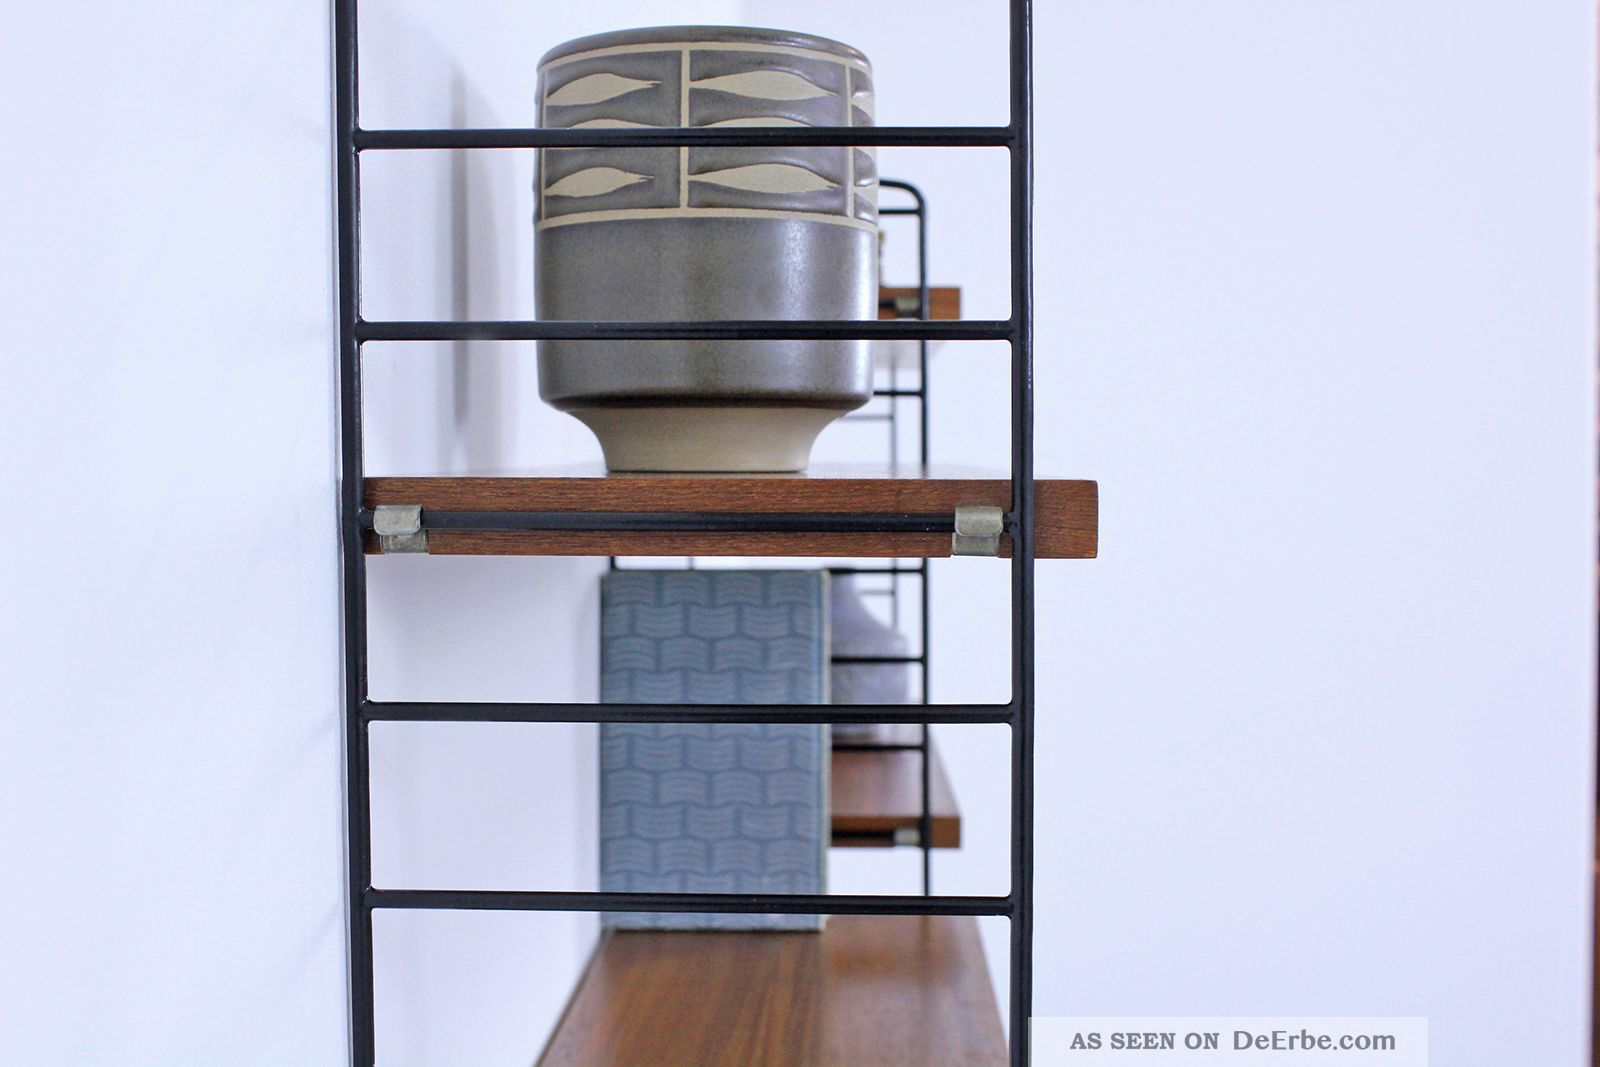 regal system string teak nisse strinning sweden shelving system no5. Black Bedroom Furniture Sets. Home Design Ideas